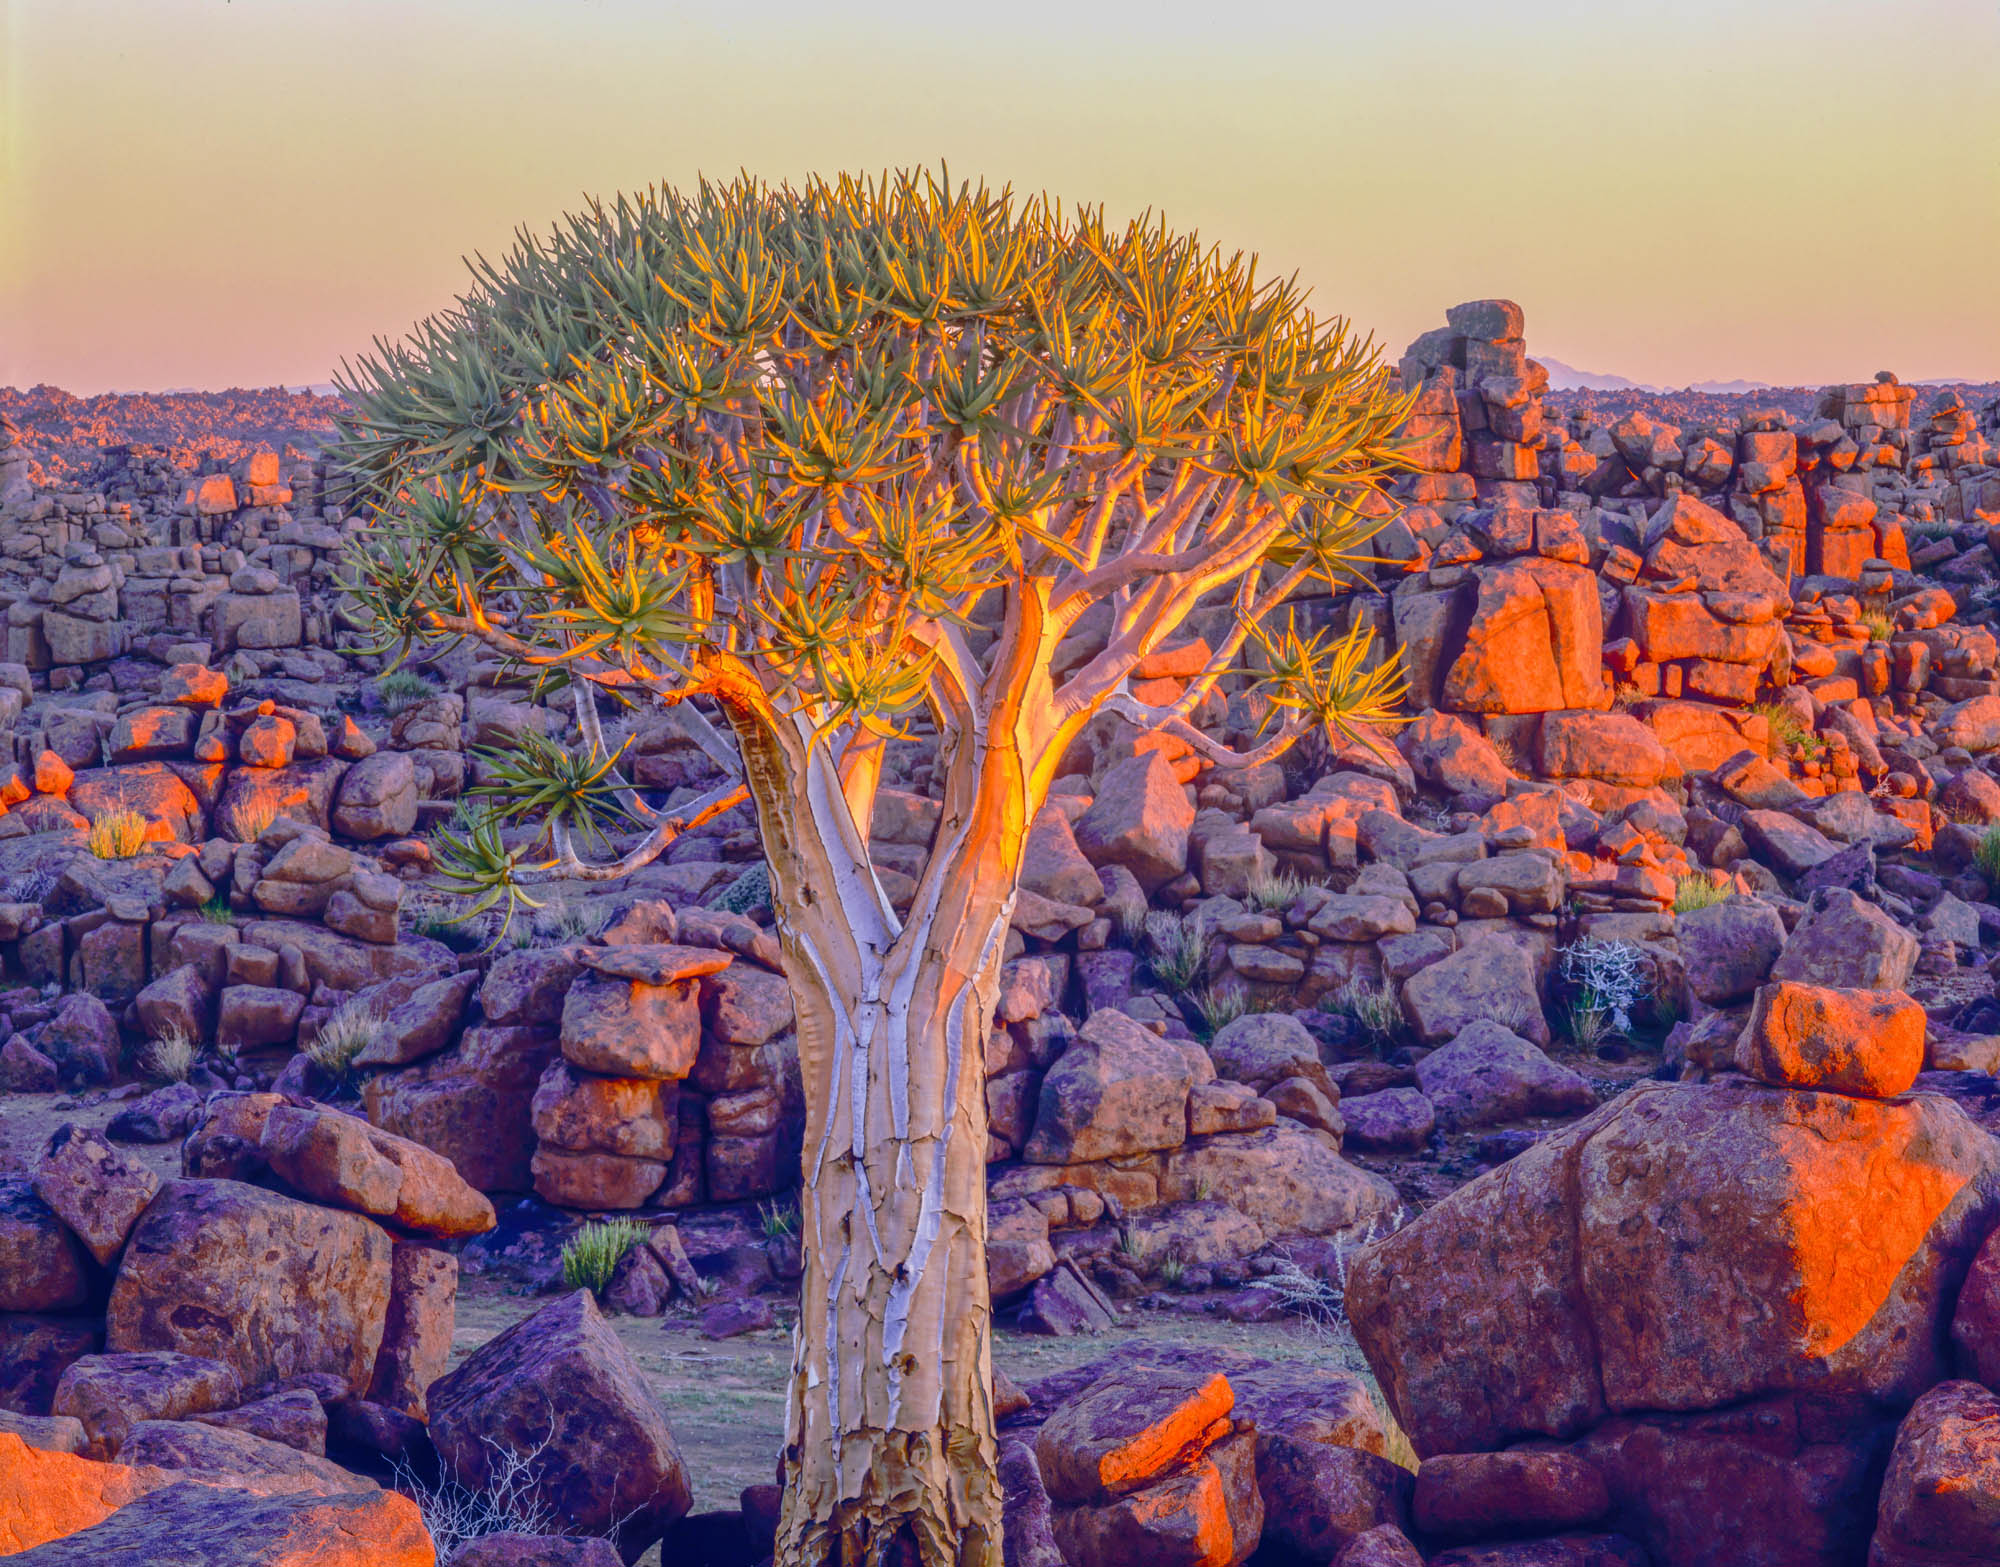 Namibia, Africa, Kokerboom Tree photographed by Tom Till